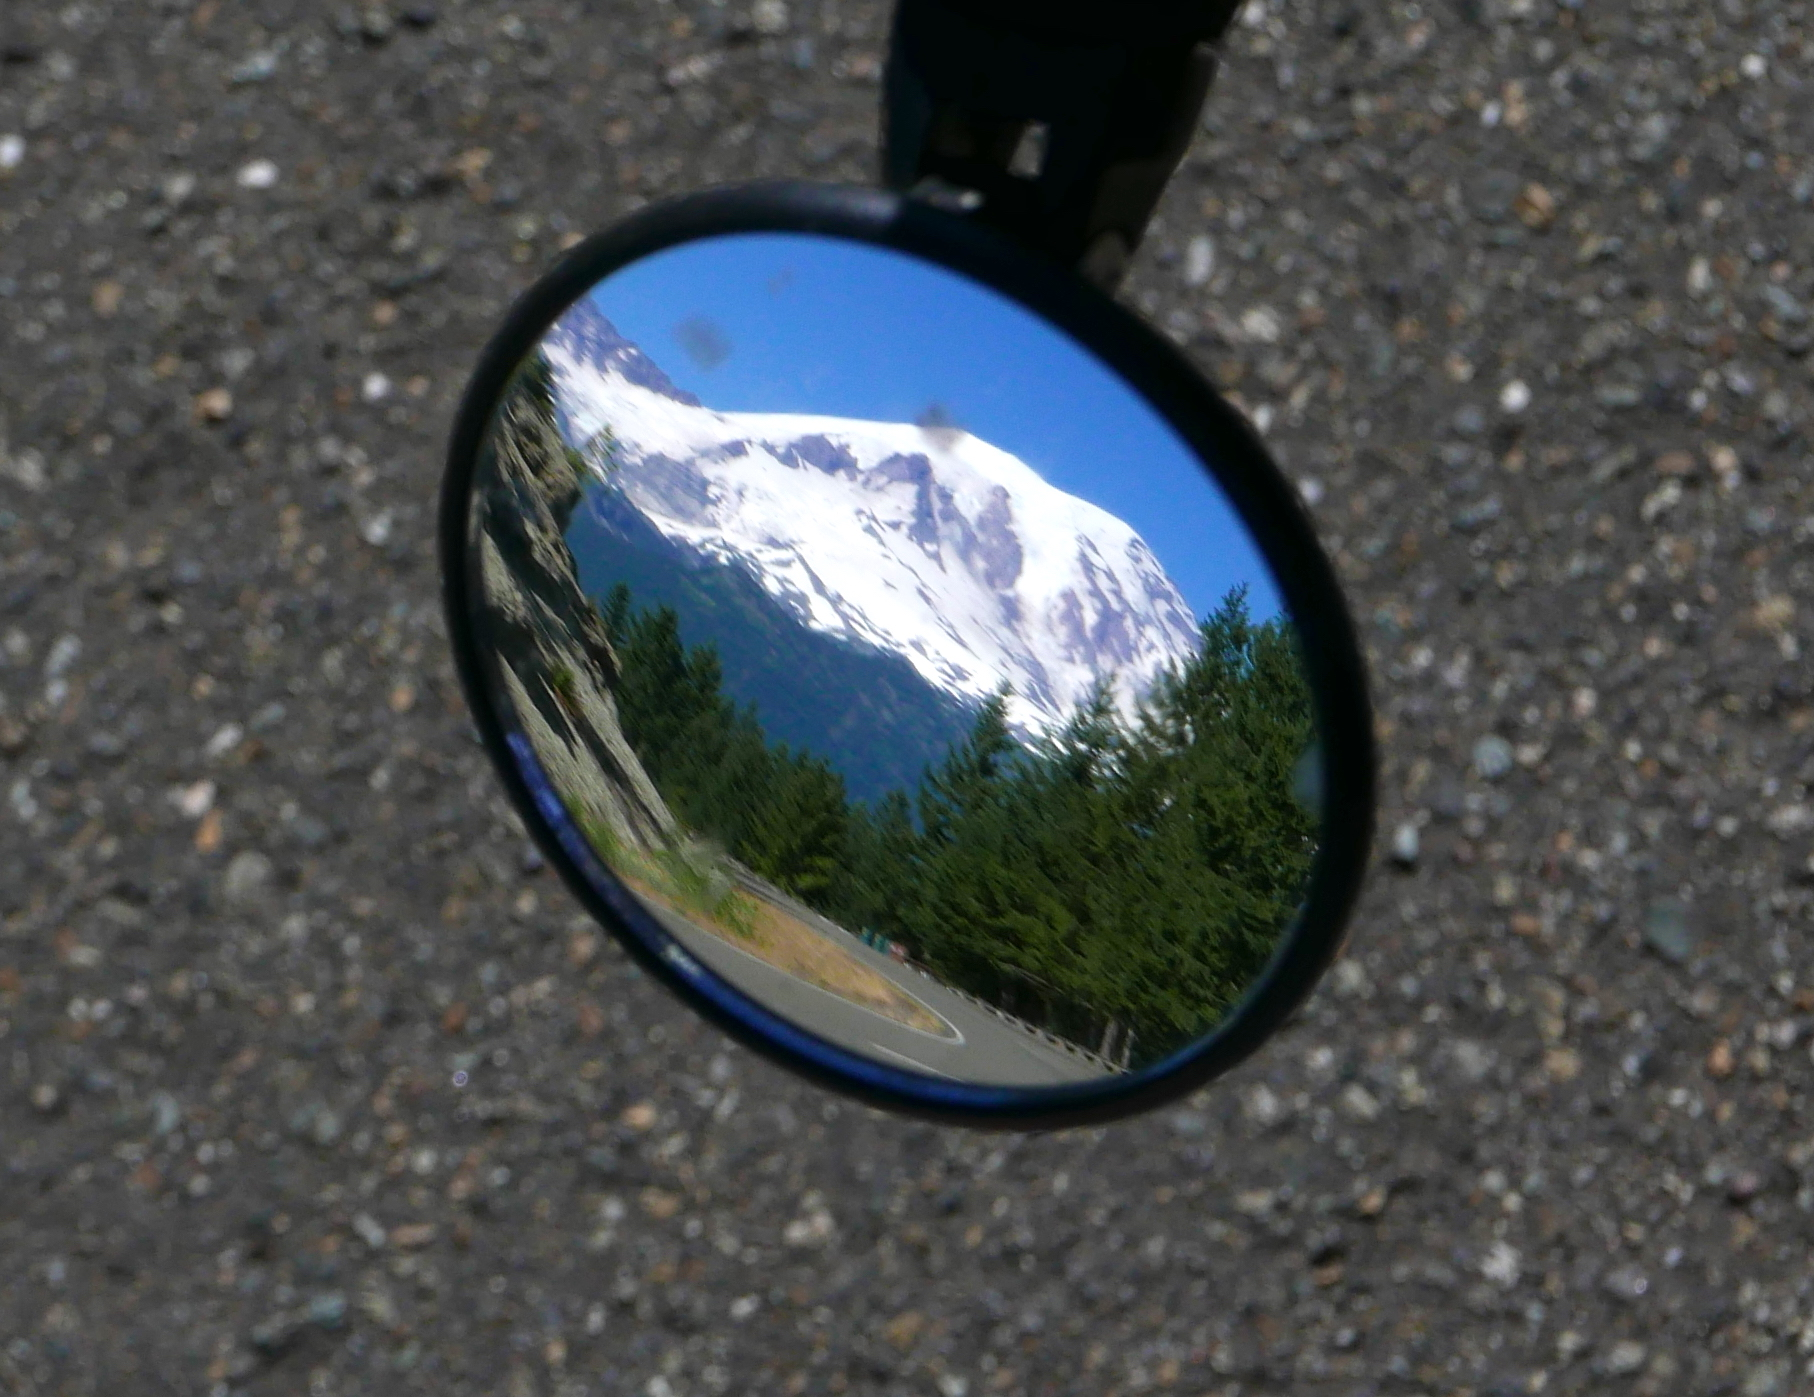 view in the mirror (which later fell out) on RIMROBOD